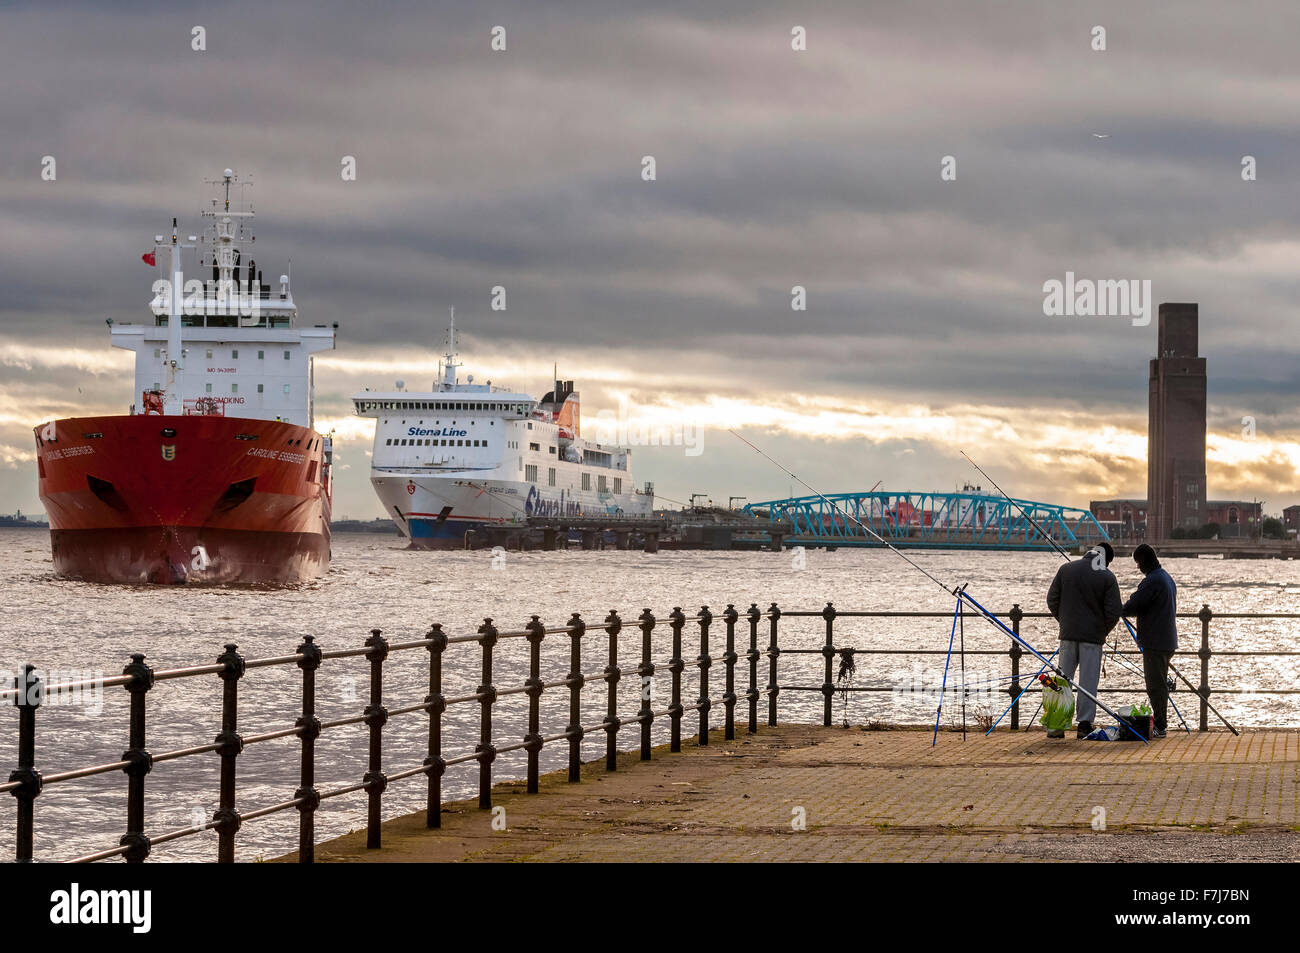 The oil and chemical tanker ship the Caroline Essberger from Holland in the river Mersey watched by two anglers - Stock Image